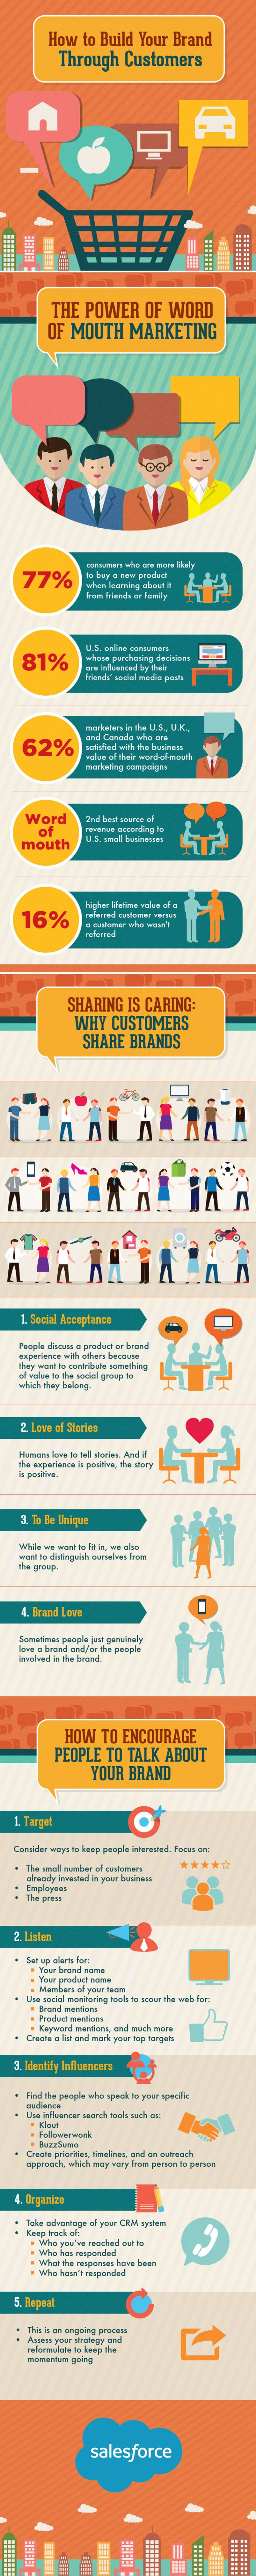 How to build your brand through customers - infographic by Salesforce